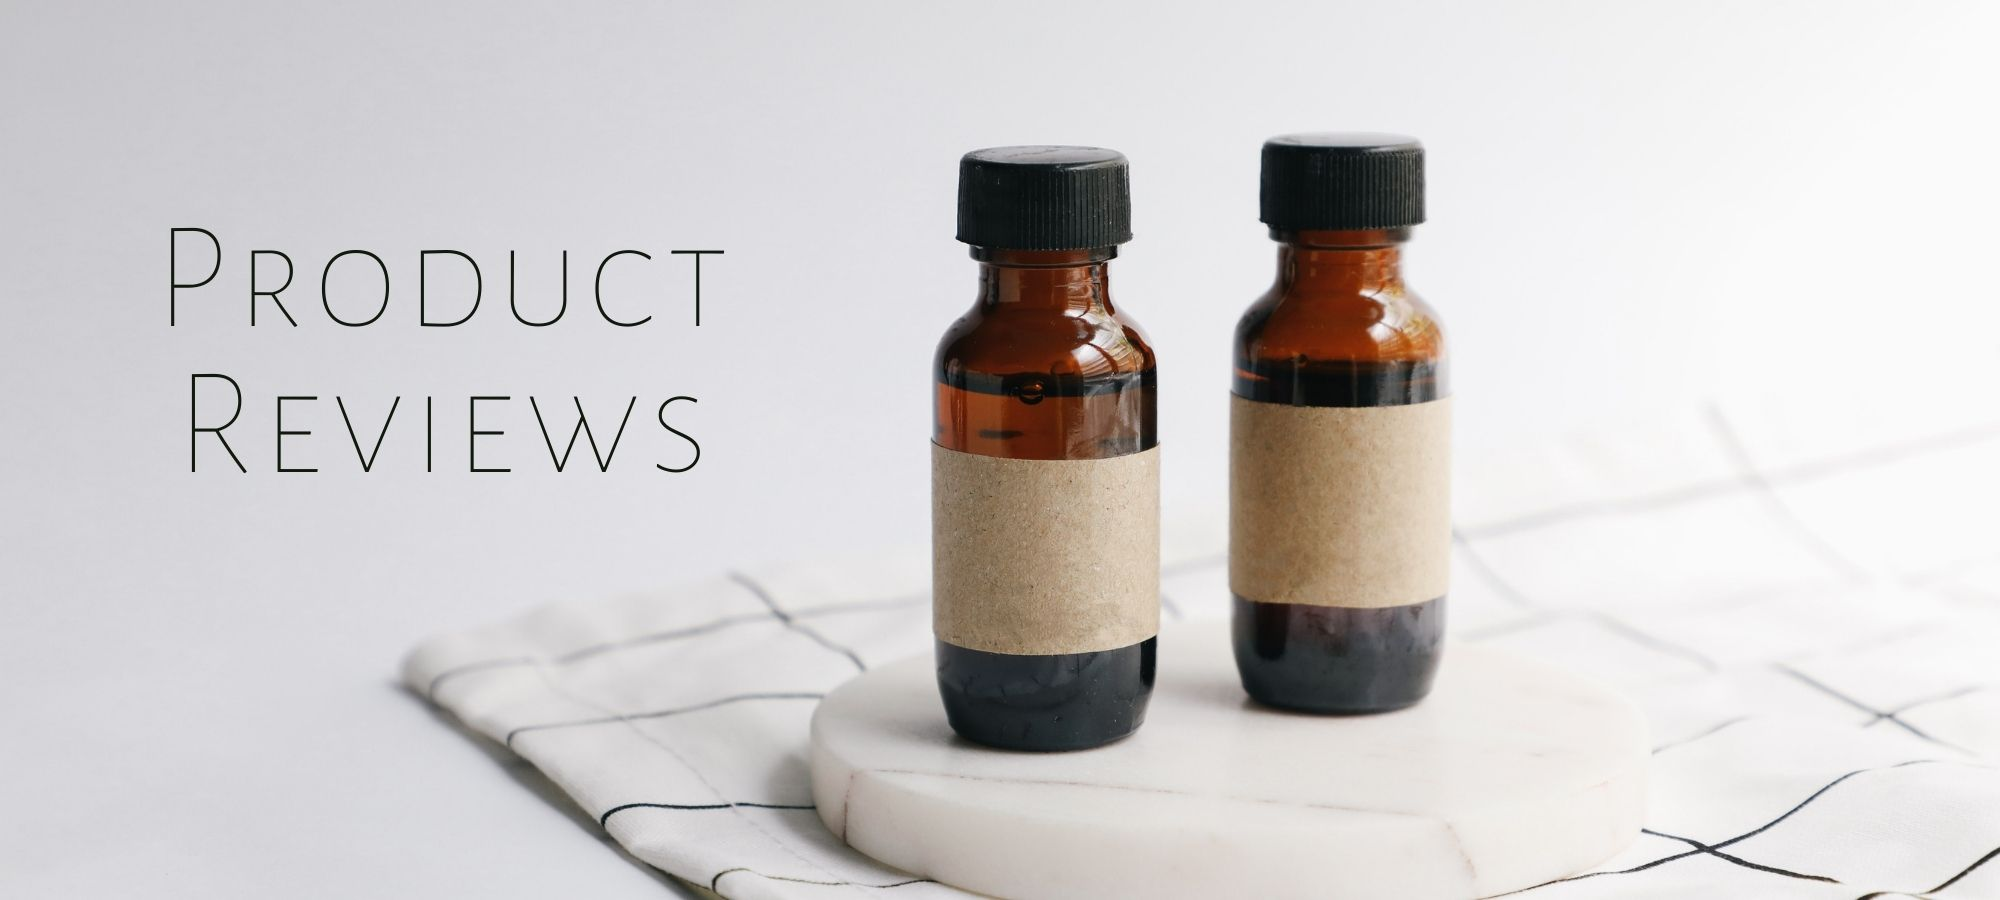 Holistic Product Reviews - Leigh Ann Lindsey